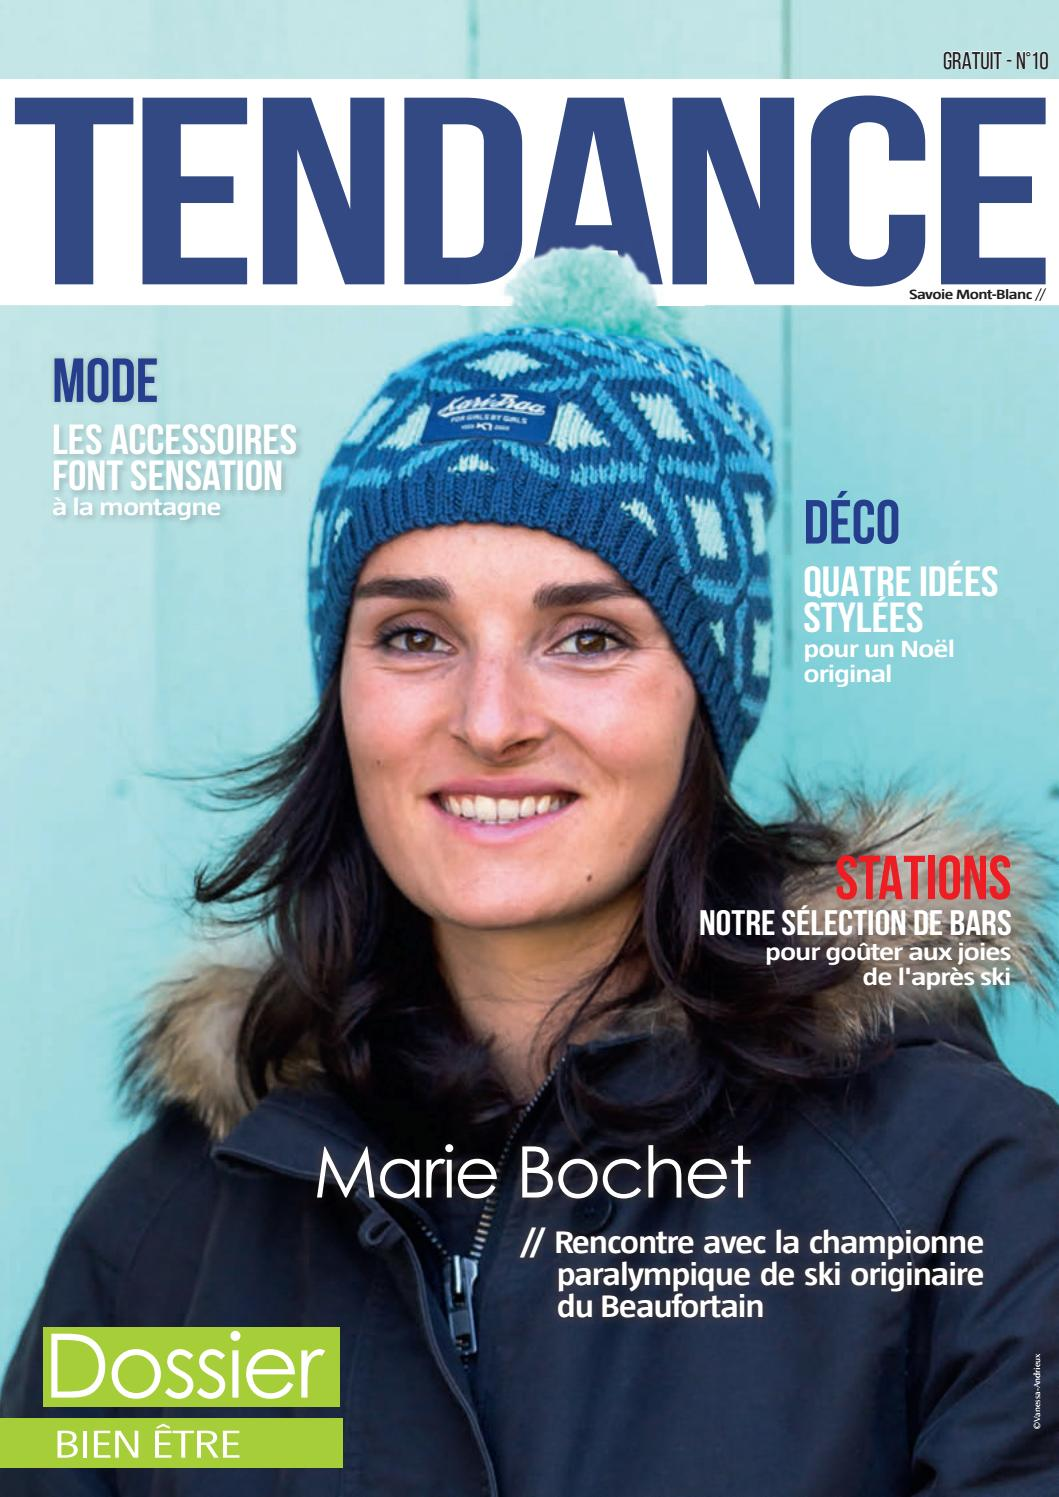 087eb42d5e5 Tendance N°10 by Le messager - issuu